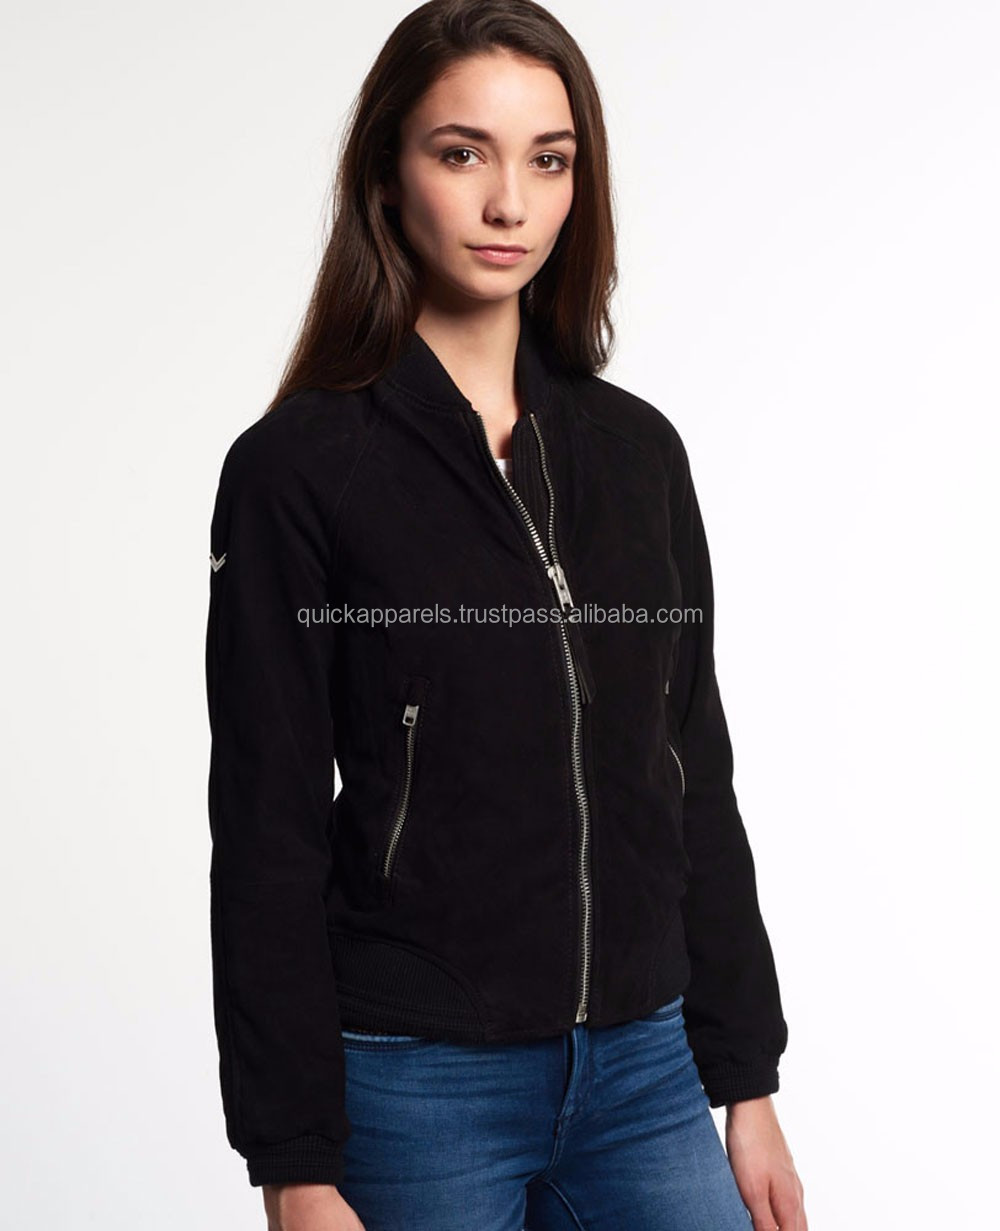 Custom Women Woven Wool Varsity Jackets as your Pictures